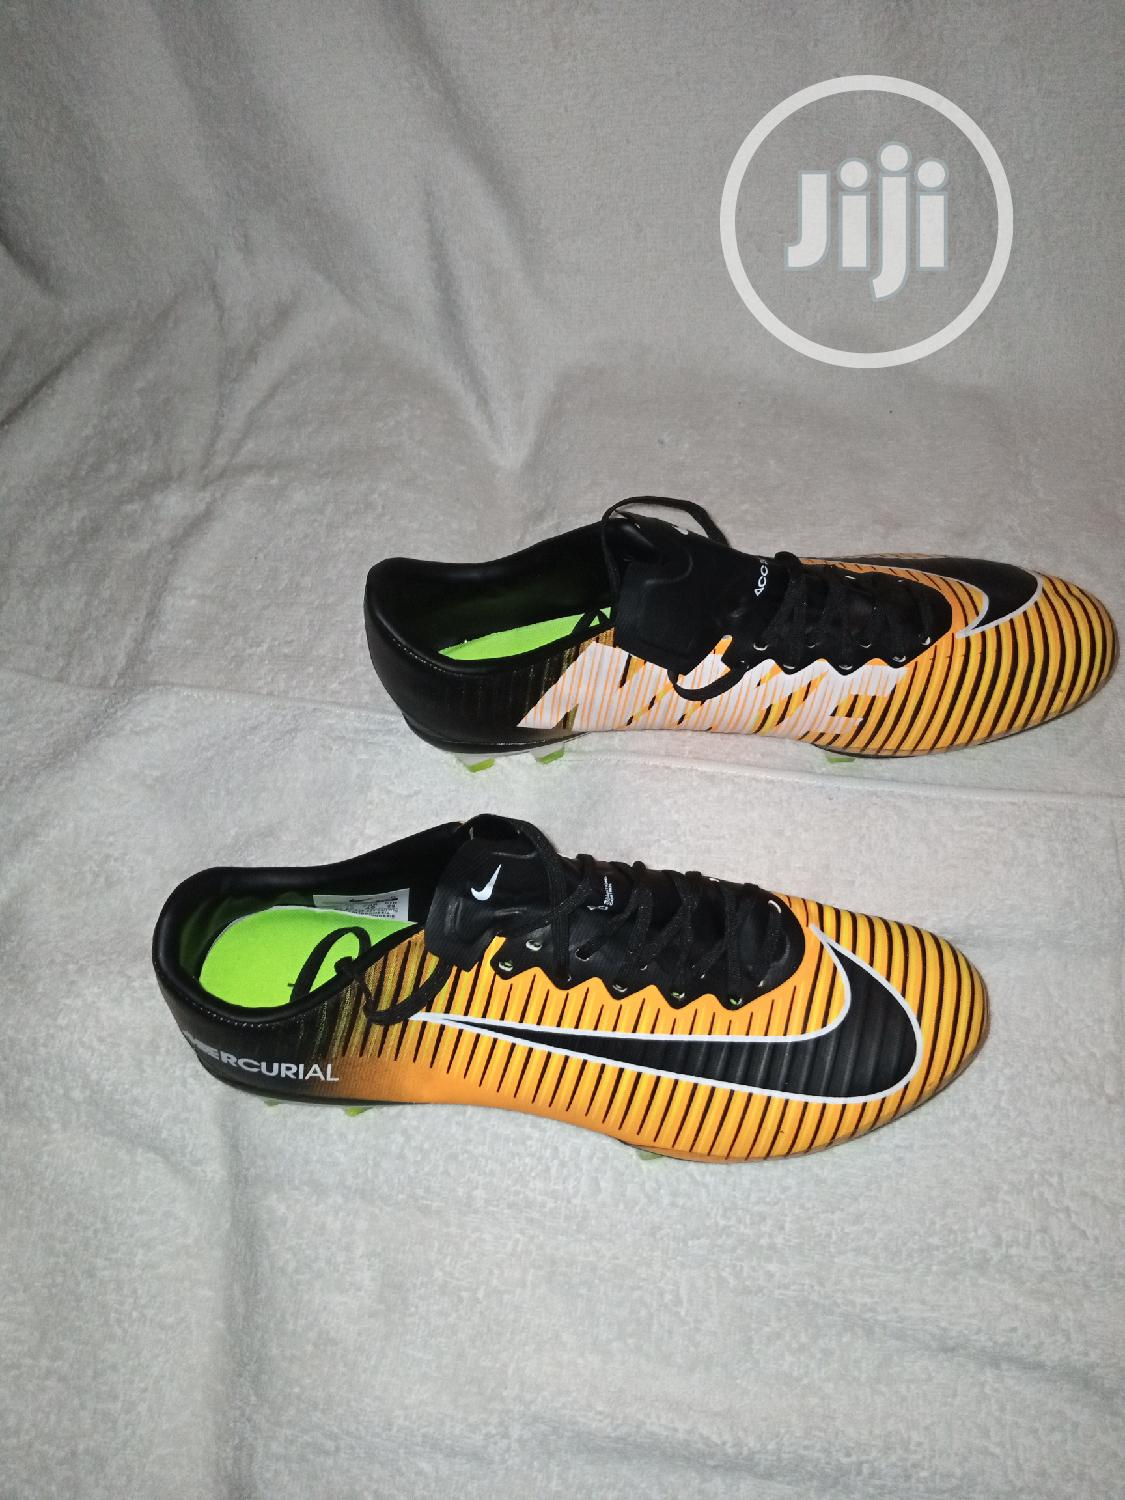 Nike Mercurial Football Boot | Shoes for sale in Surulere, Lagos State, Nigeria